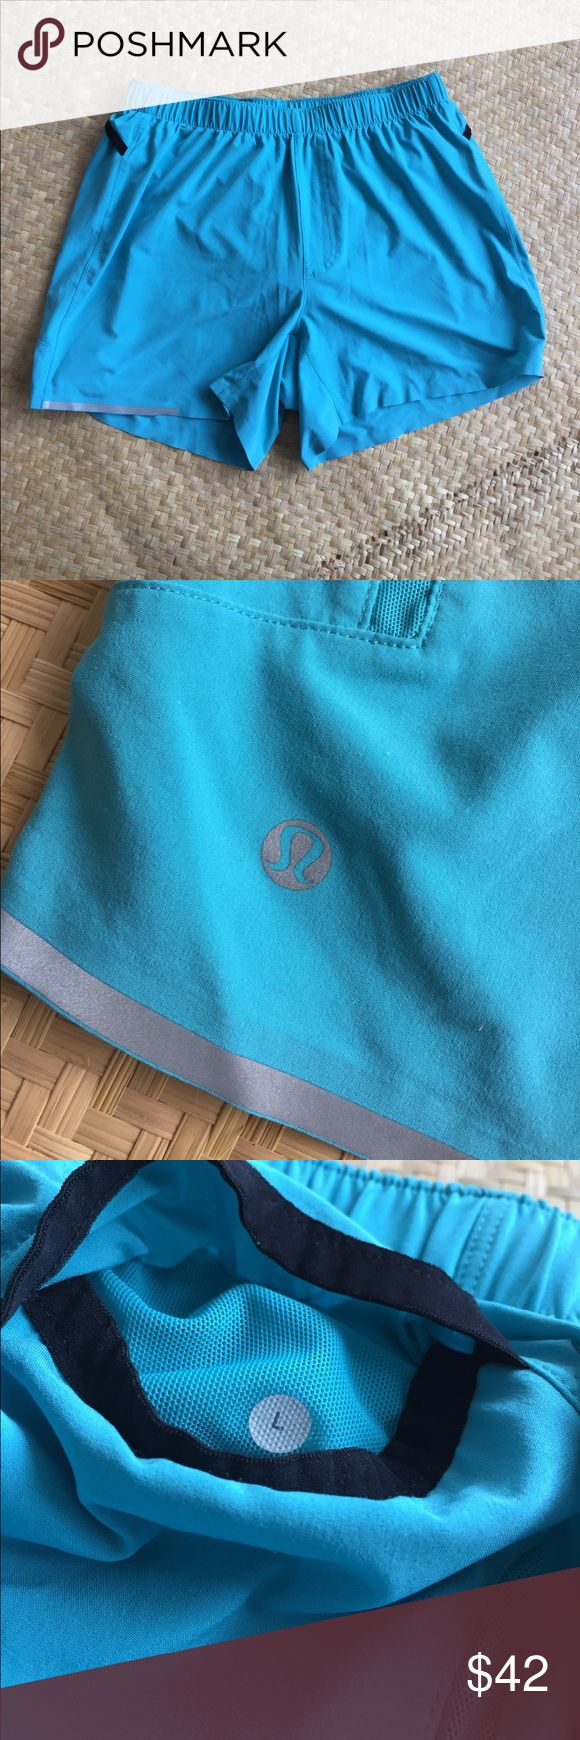 Lululemon men's Aqua shorts size L Great basic running shorts. Supportive lining. Discreet side pockets. Size L. Elastic waist. Very good preloved condition. Please take a look at the pictures for better reference. lululemon athletica Shorts Athletic